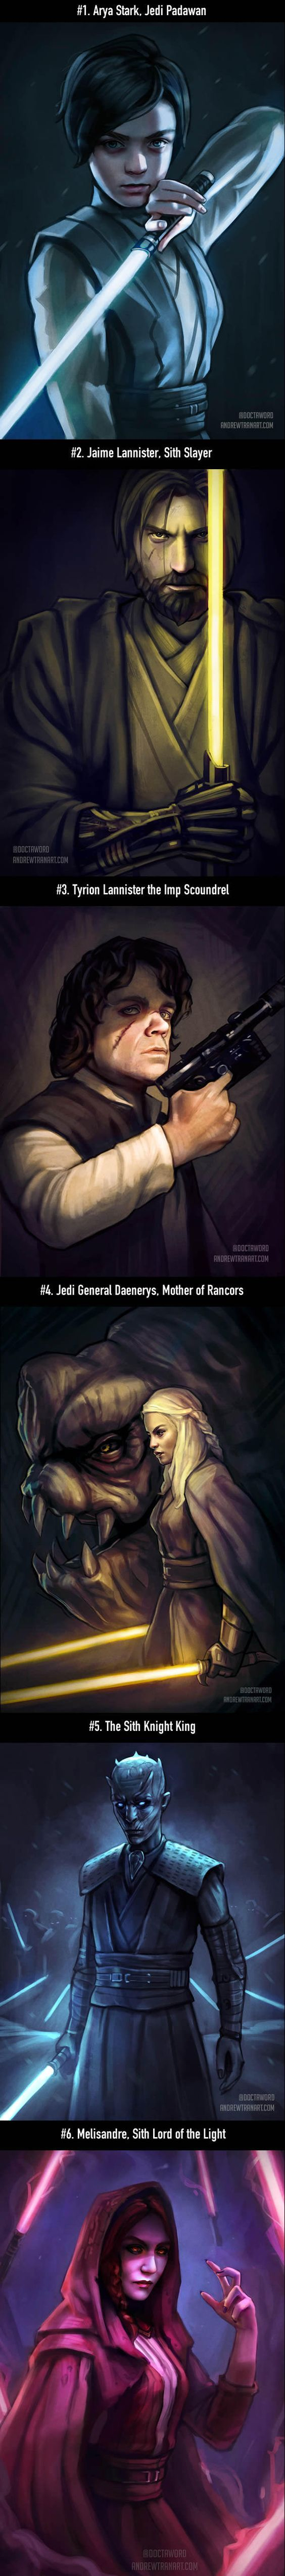 Game of thrones Characters in Star war